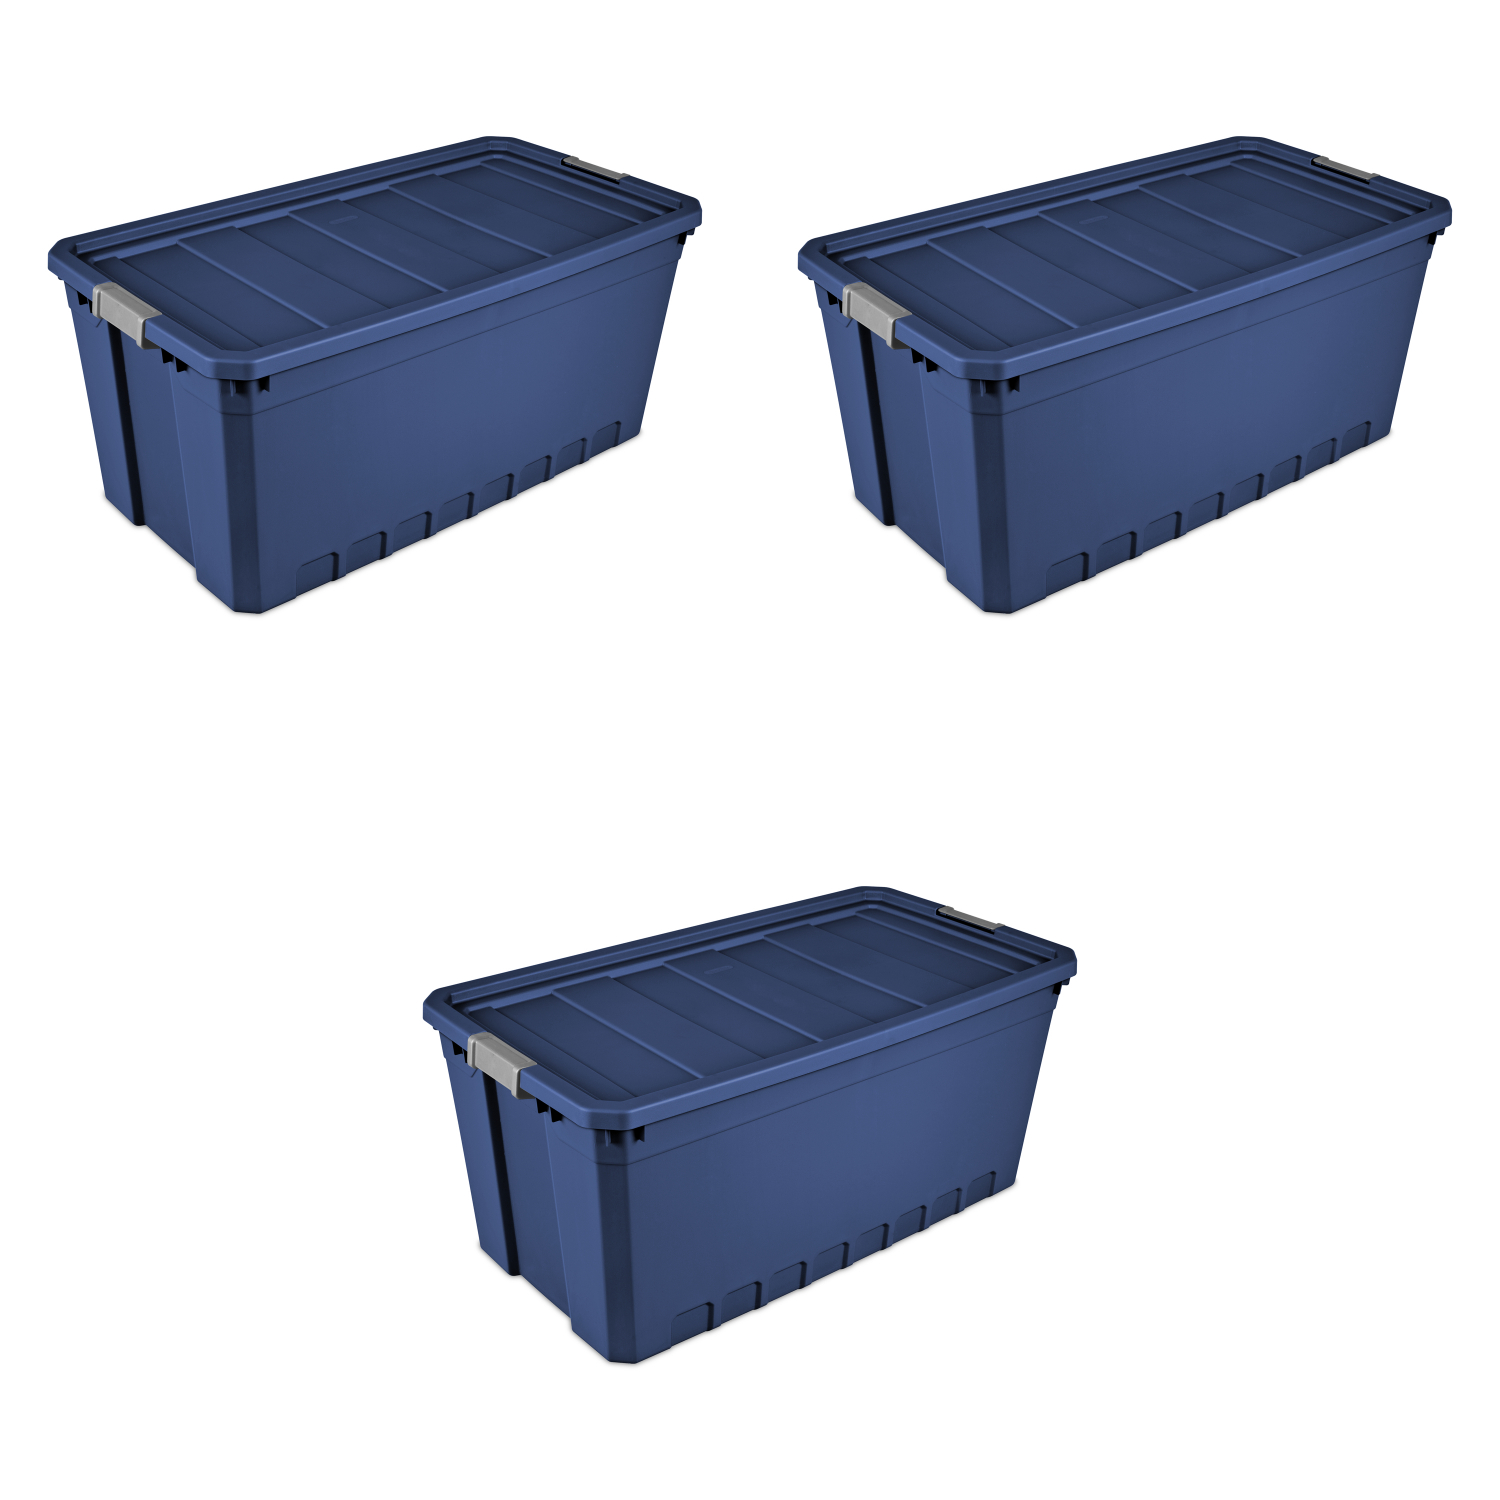 Details About 3pk Plastic Storage Containers Large Blue 50 Gallon Stacking Bin Box Tote W Lid